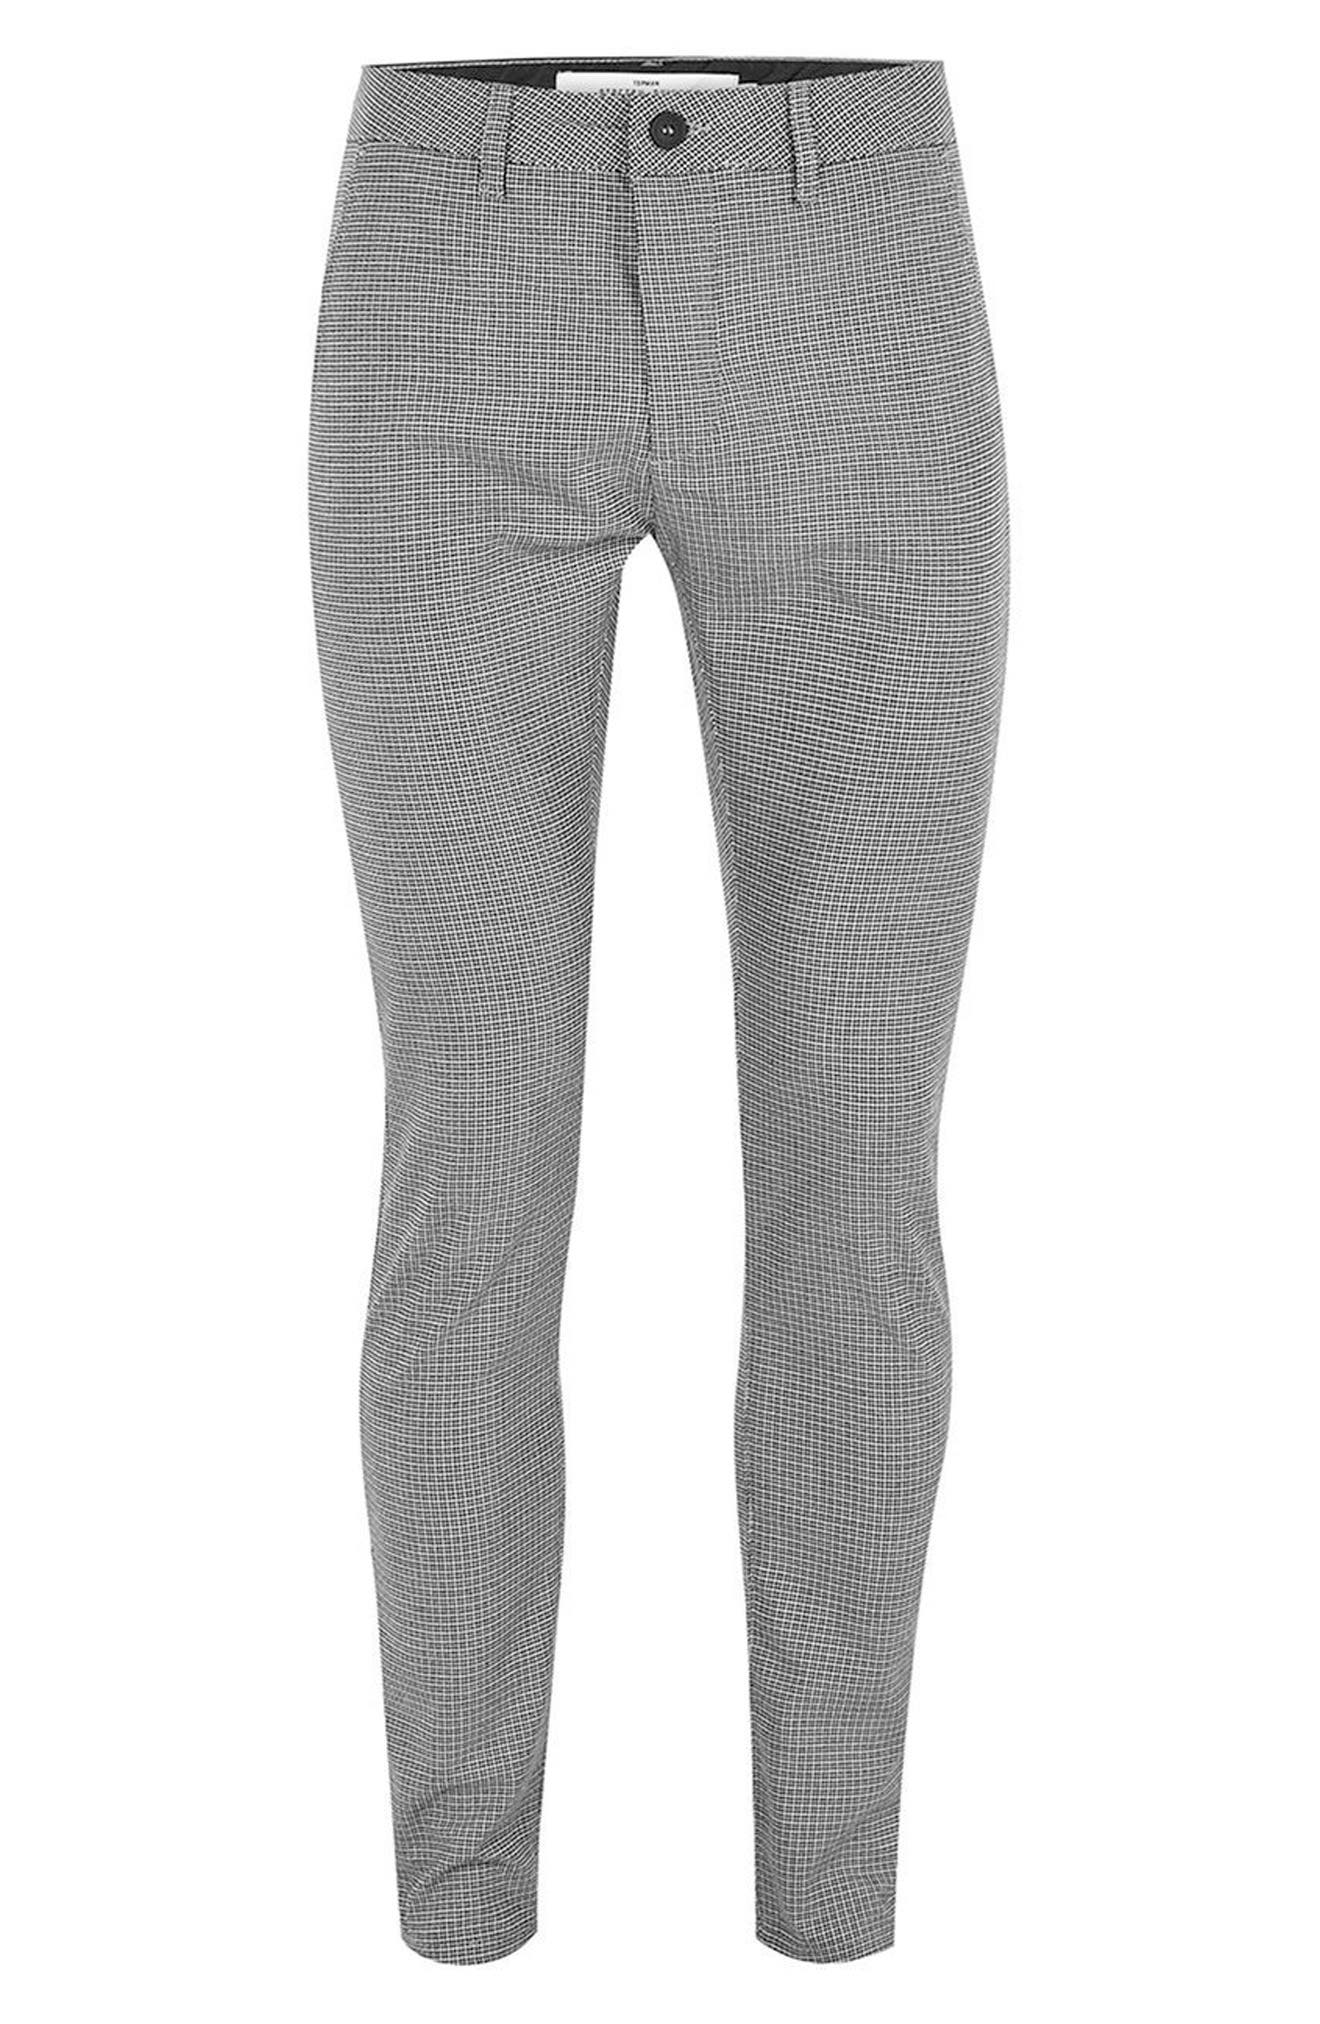 Mini Houndstooth Stretch Skinny Fit Trousers,                             Alternate thumbnail 4, color,                             020